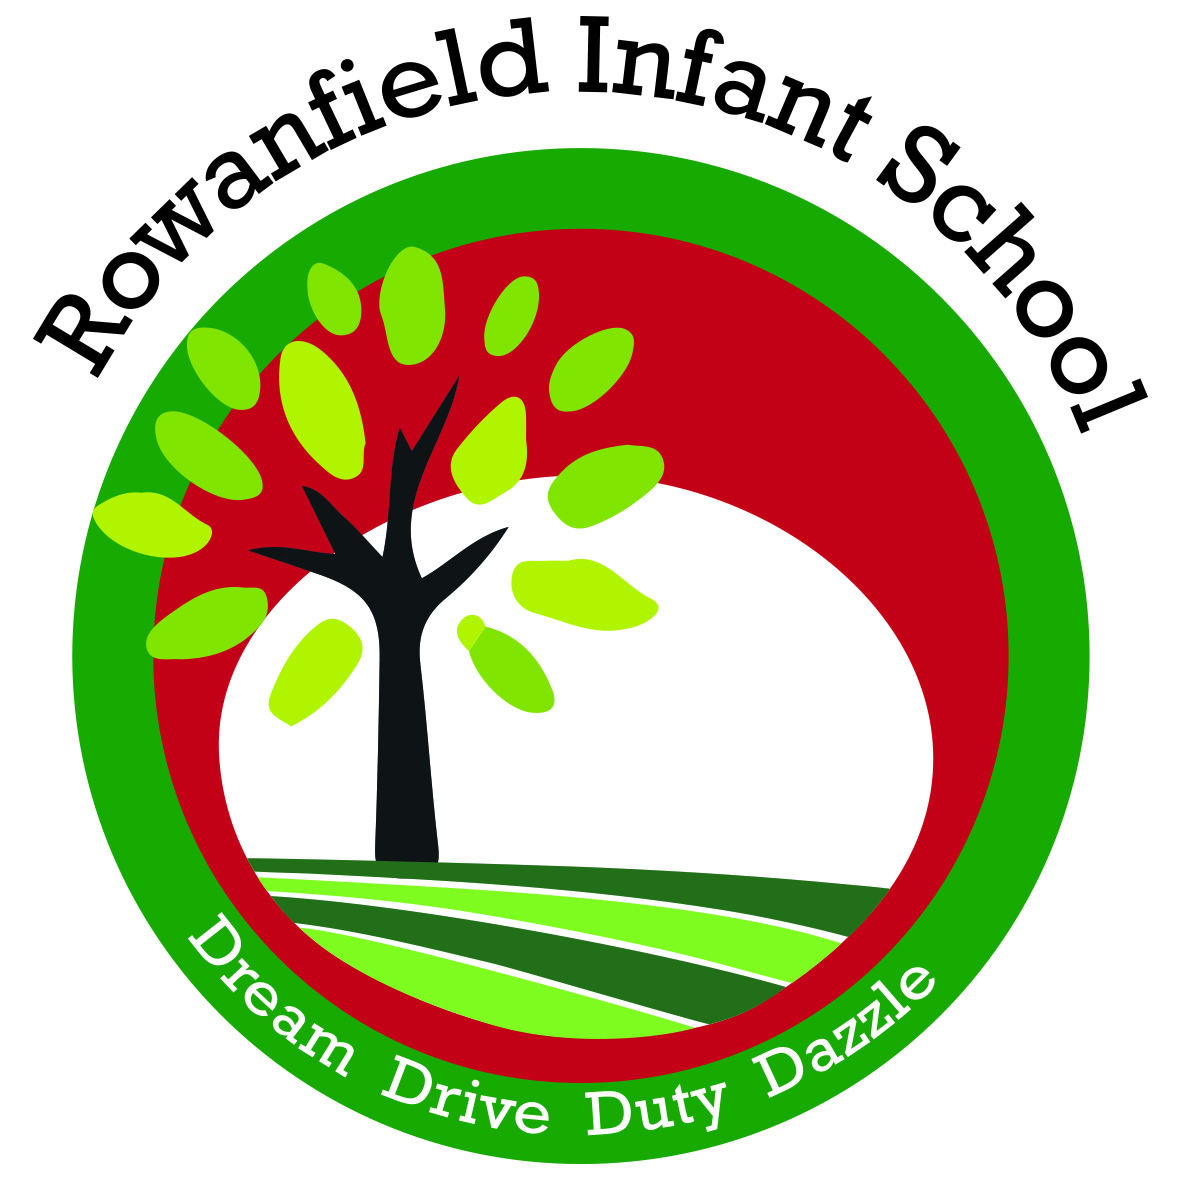 ROWANFIELD INFANT SCHOOL LOGO